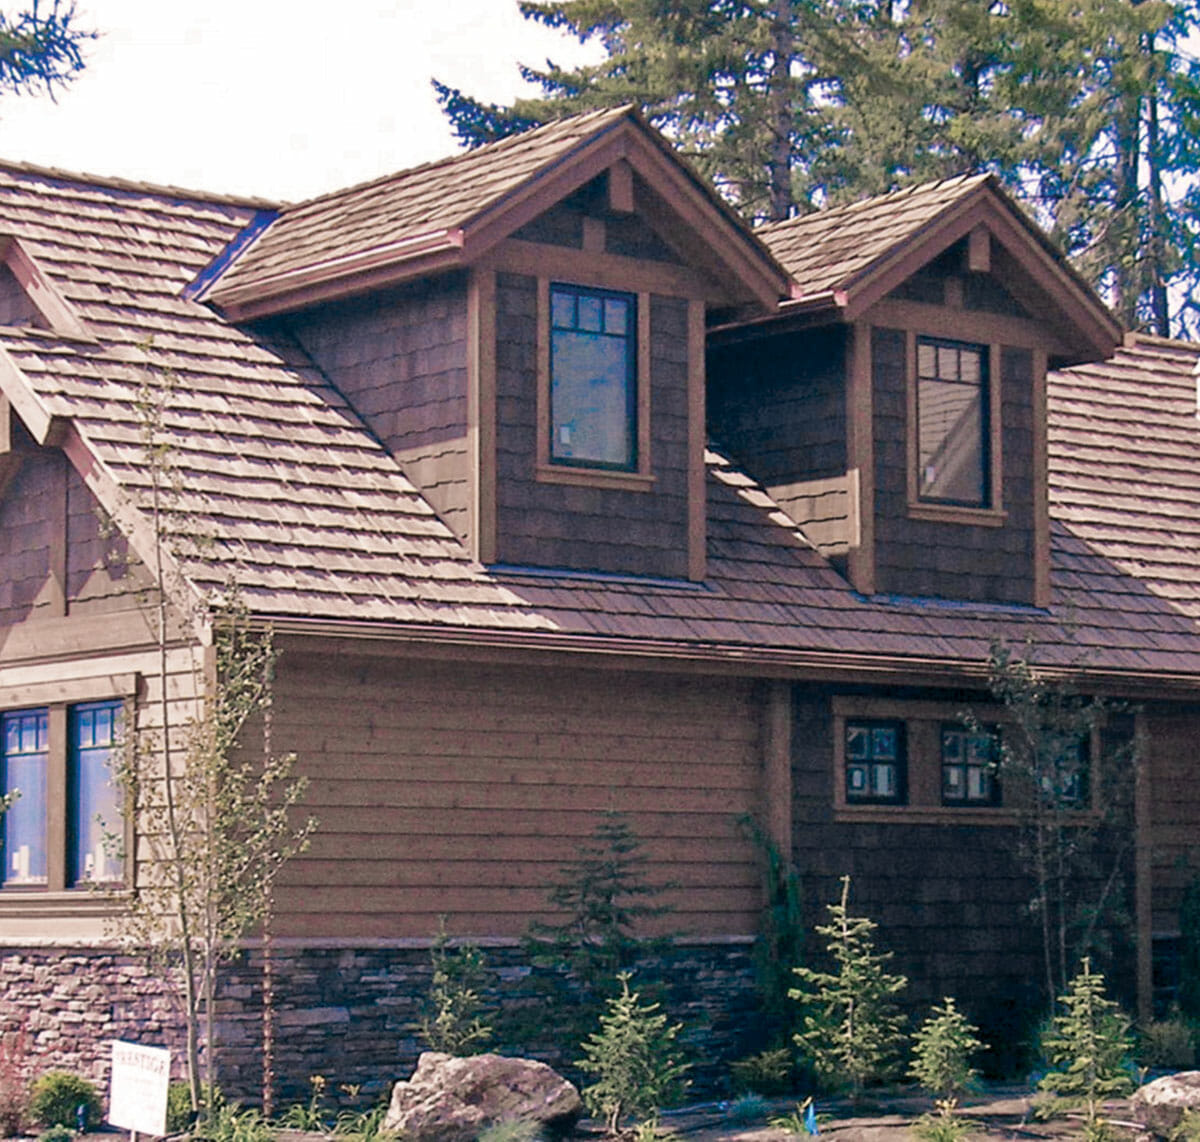 cedar siding home image source